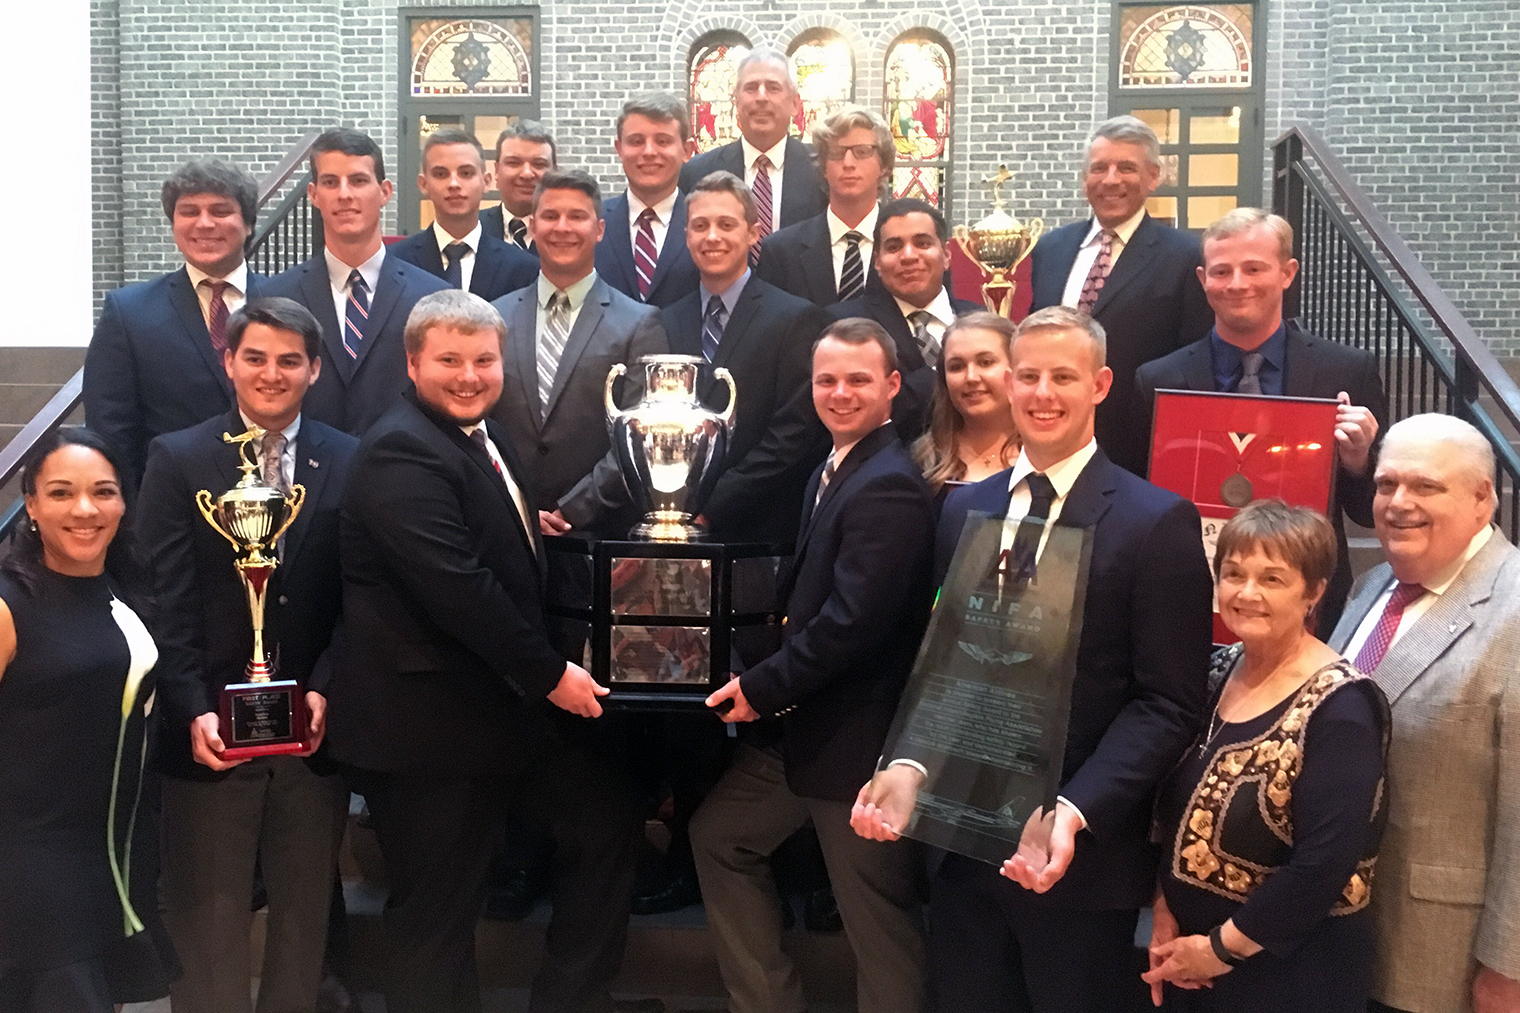 Liberty University's School of Aeronautics NIFA Flight Team poses with hardware it earned at nationals this year.